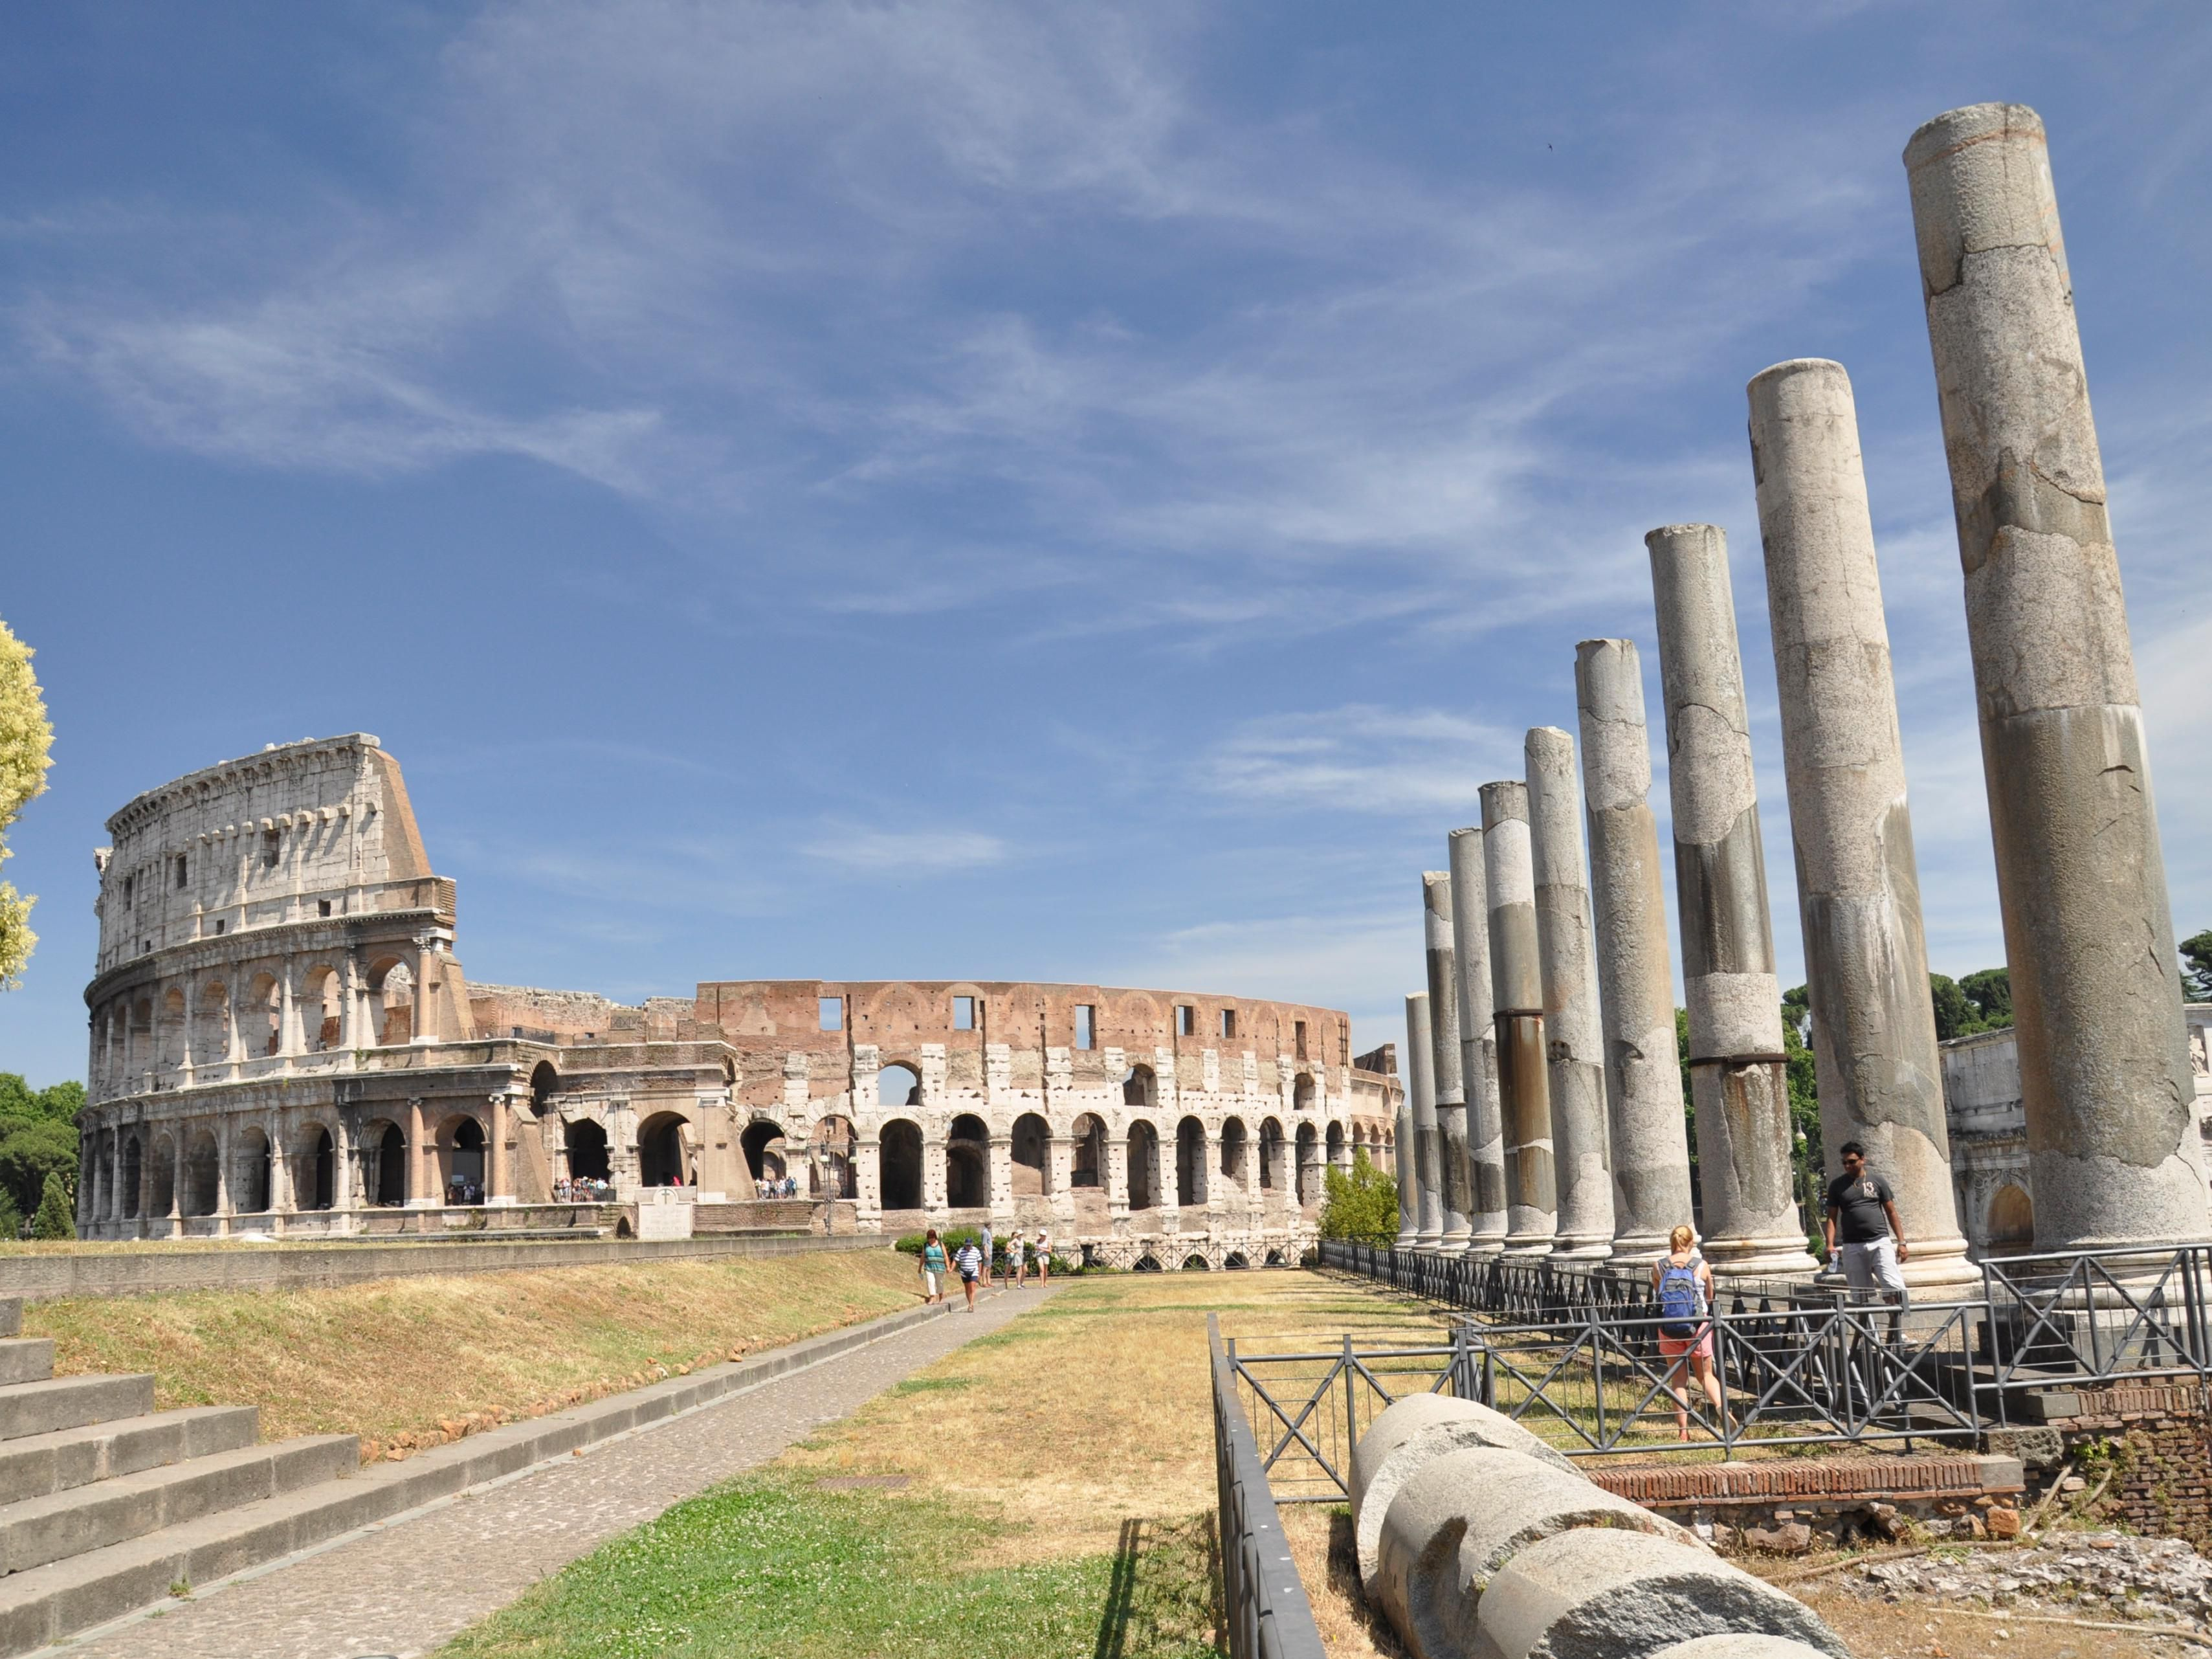 The Colosseum and the Roman Forum